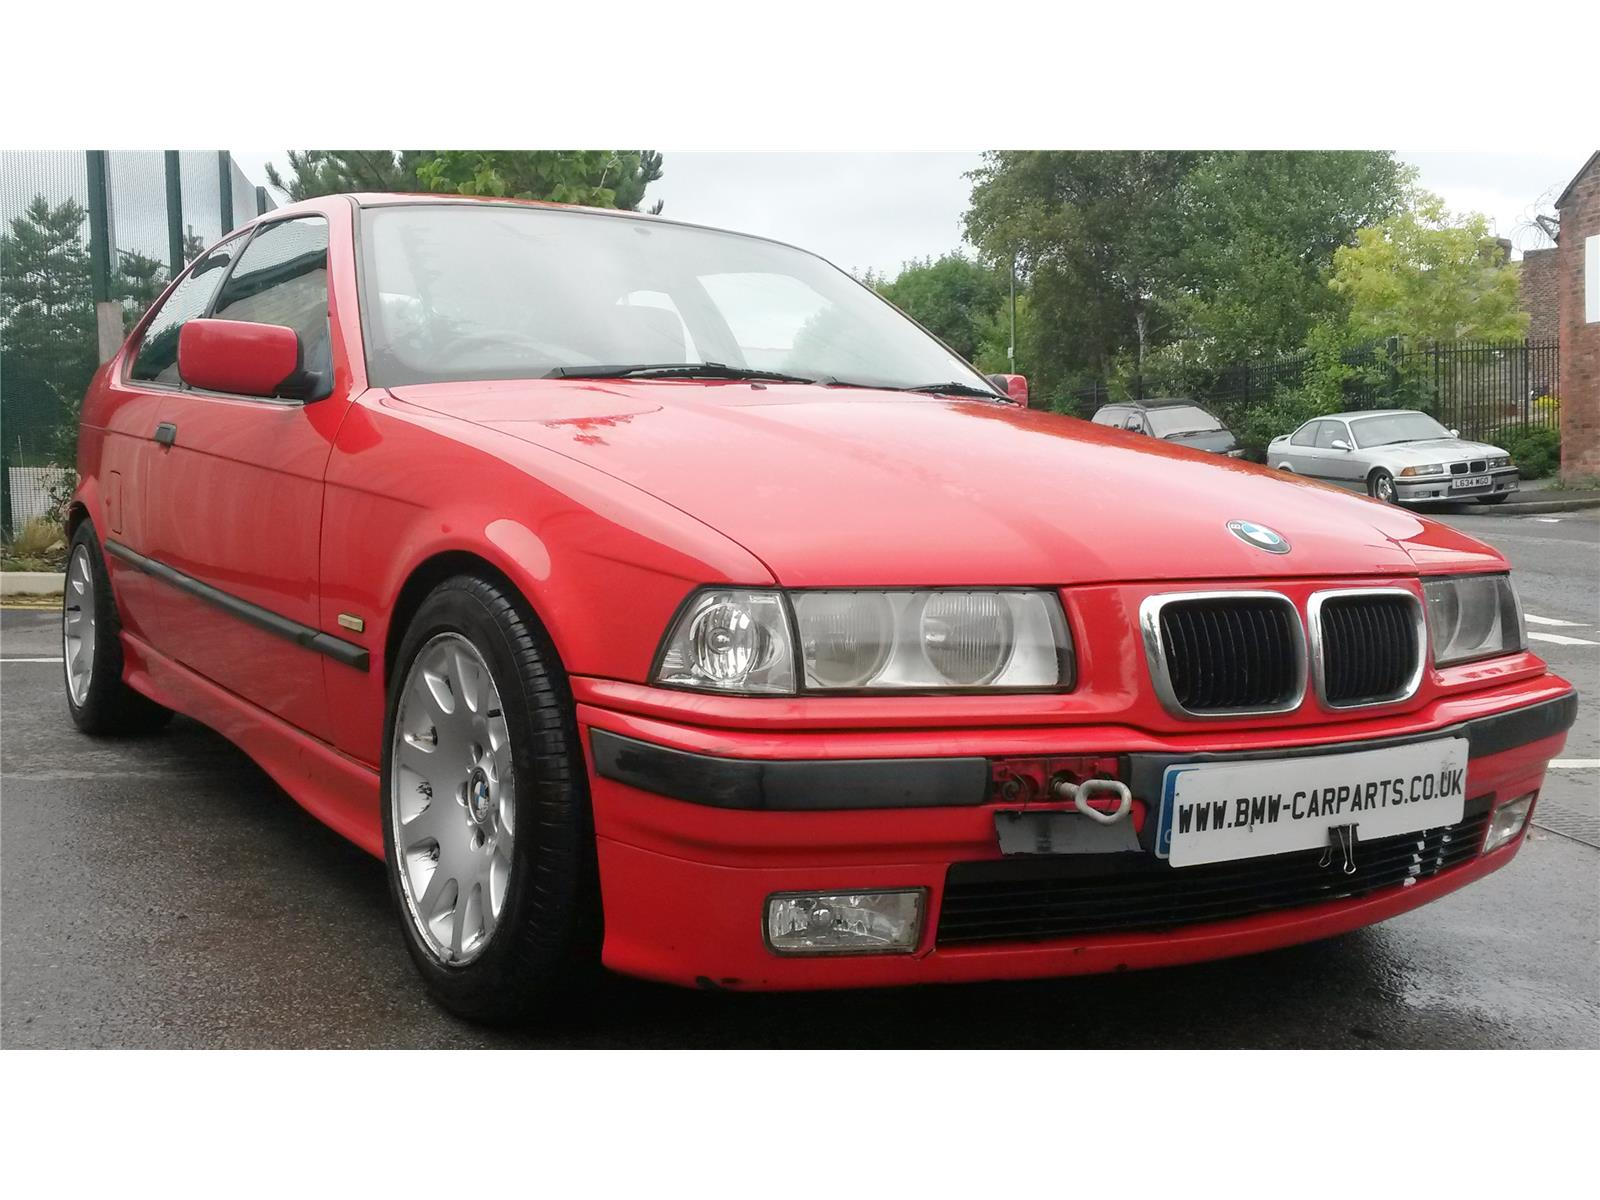 1999 bmw 3 series 316i se compact 3 door hatchback petrol manual breaking for used and spare. Black Bedroom Furniture Sets. Home Design Ideas